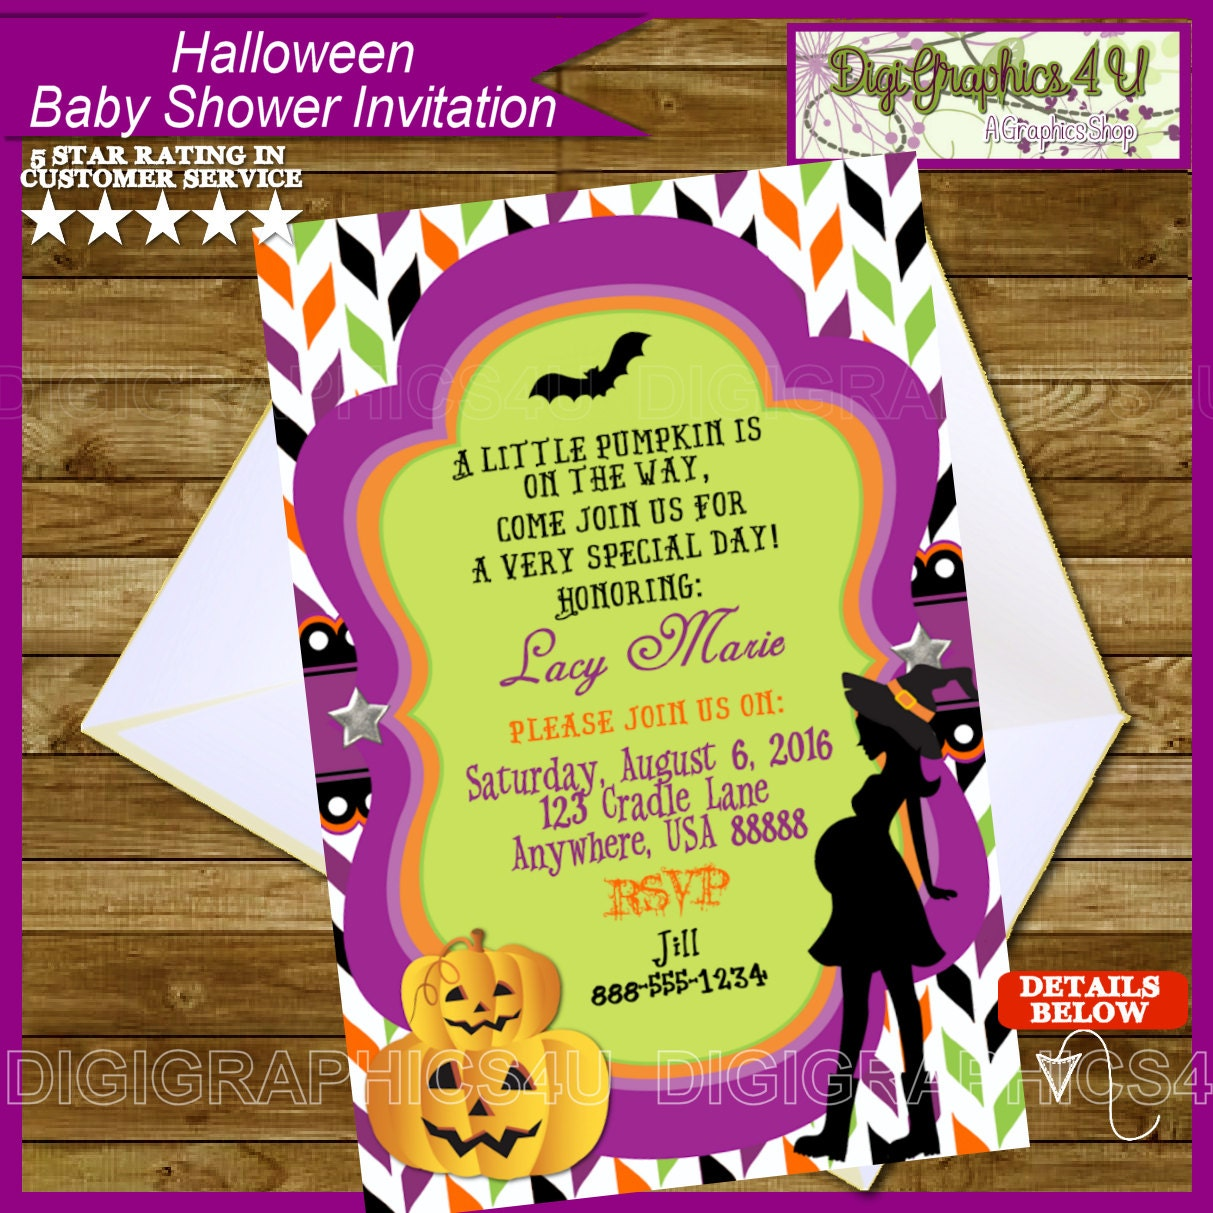 halloween baby shower personalized invitation by digigraphics4u